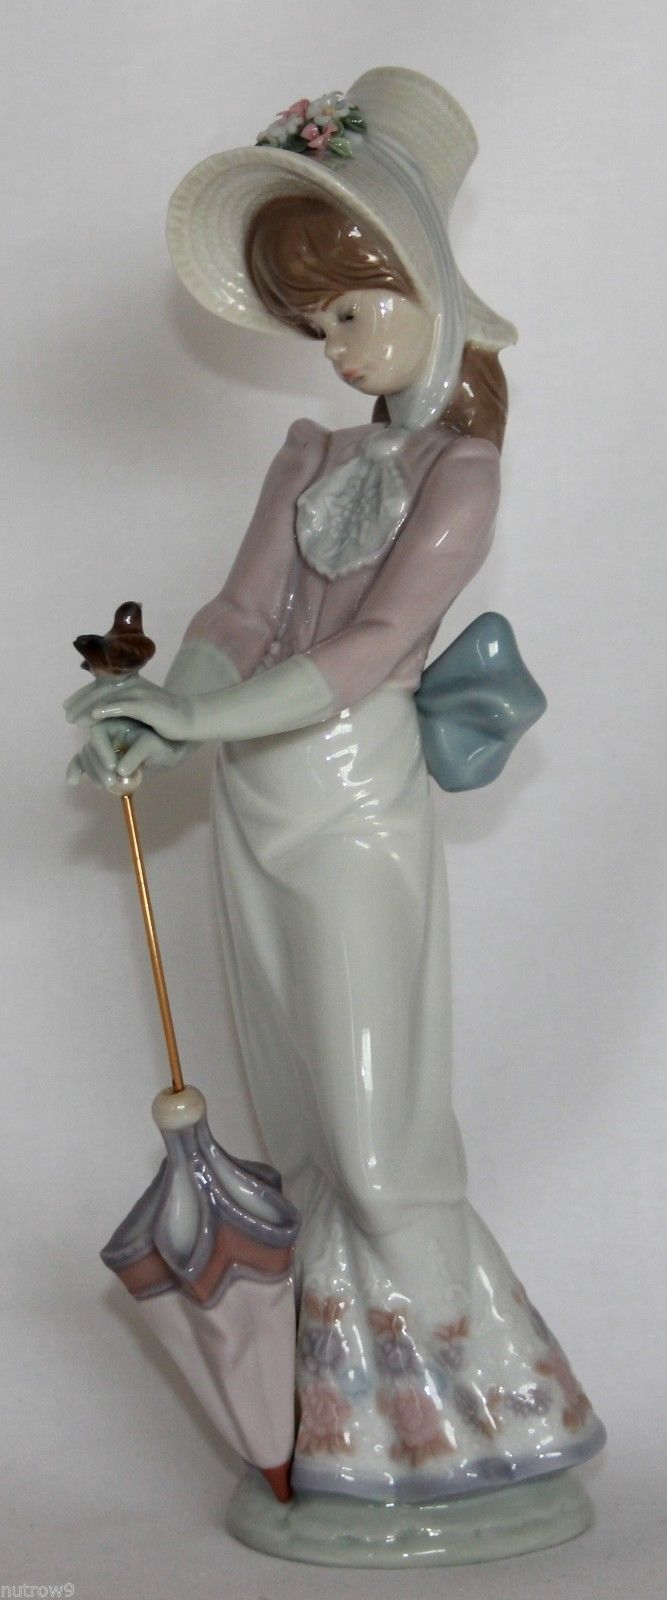 Lladro 7618 Garden Song